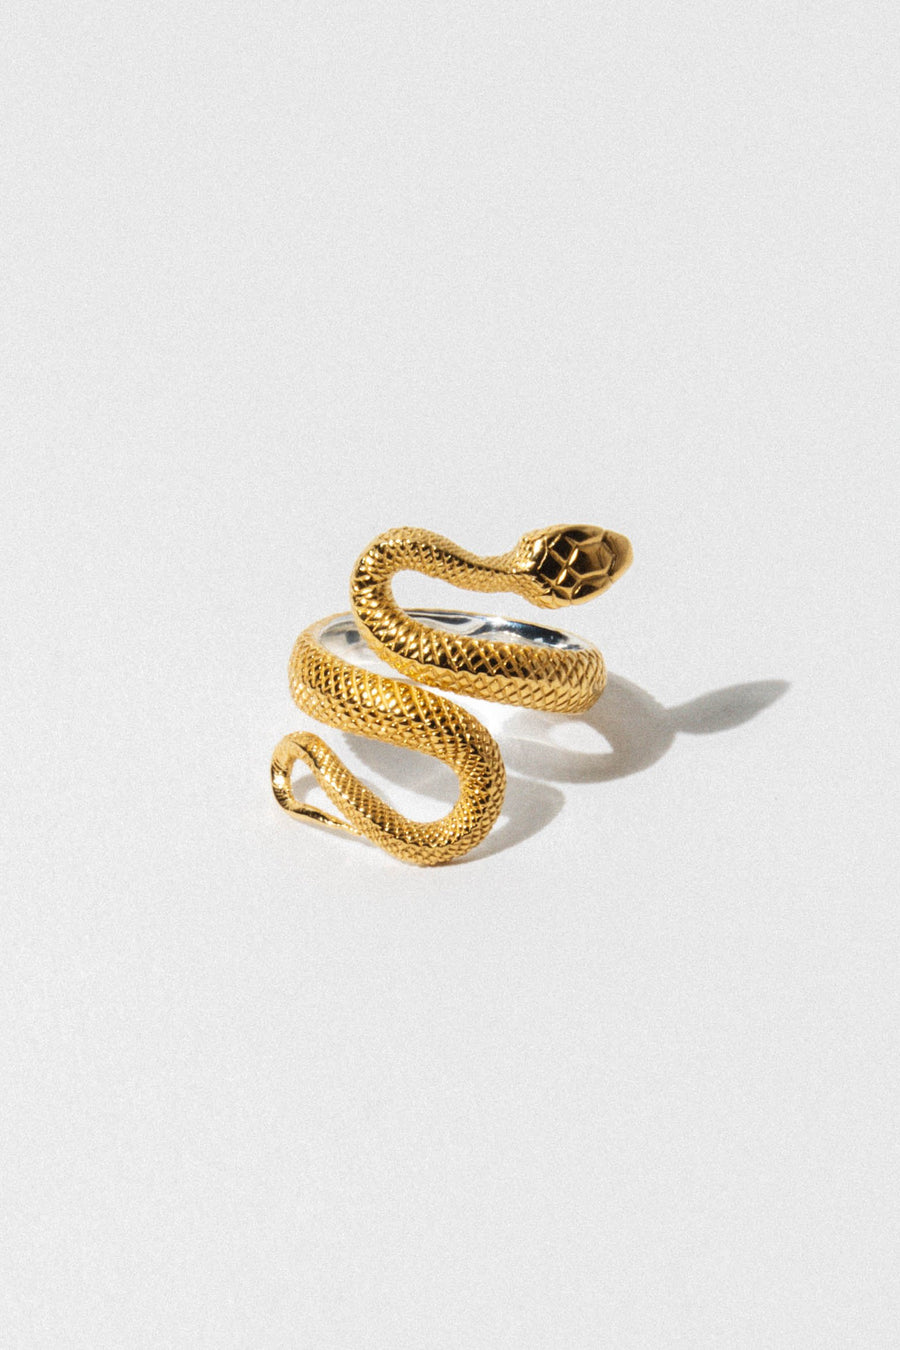 Temple of the Sun Jewelry Serpent Ring